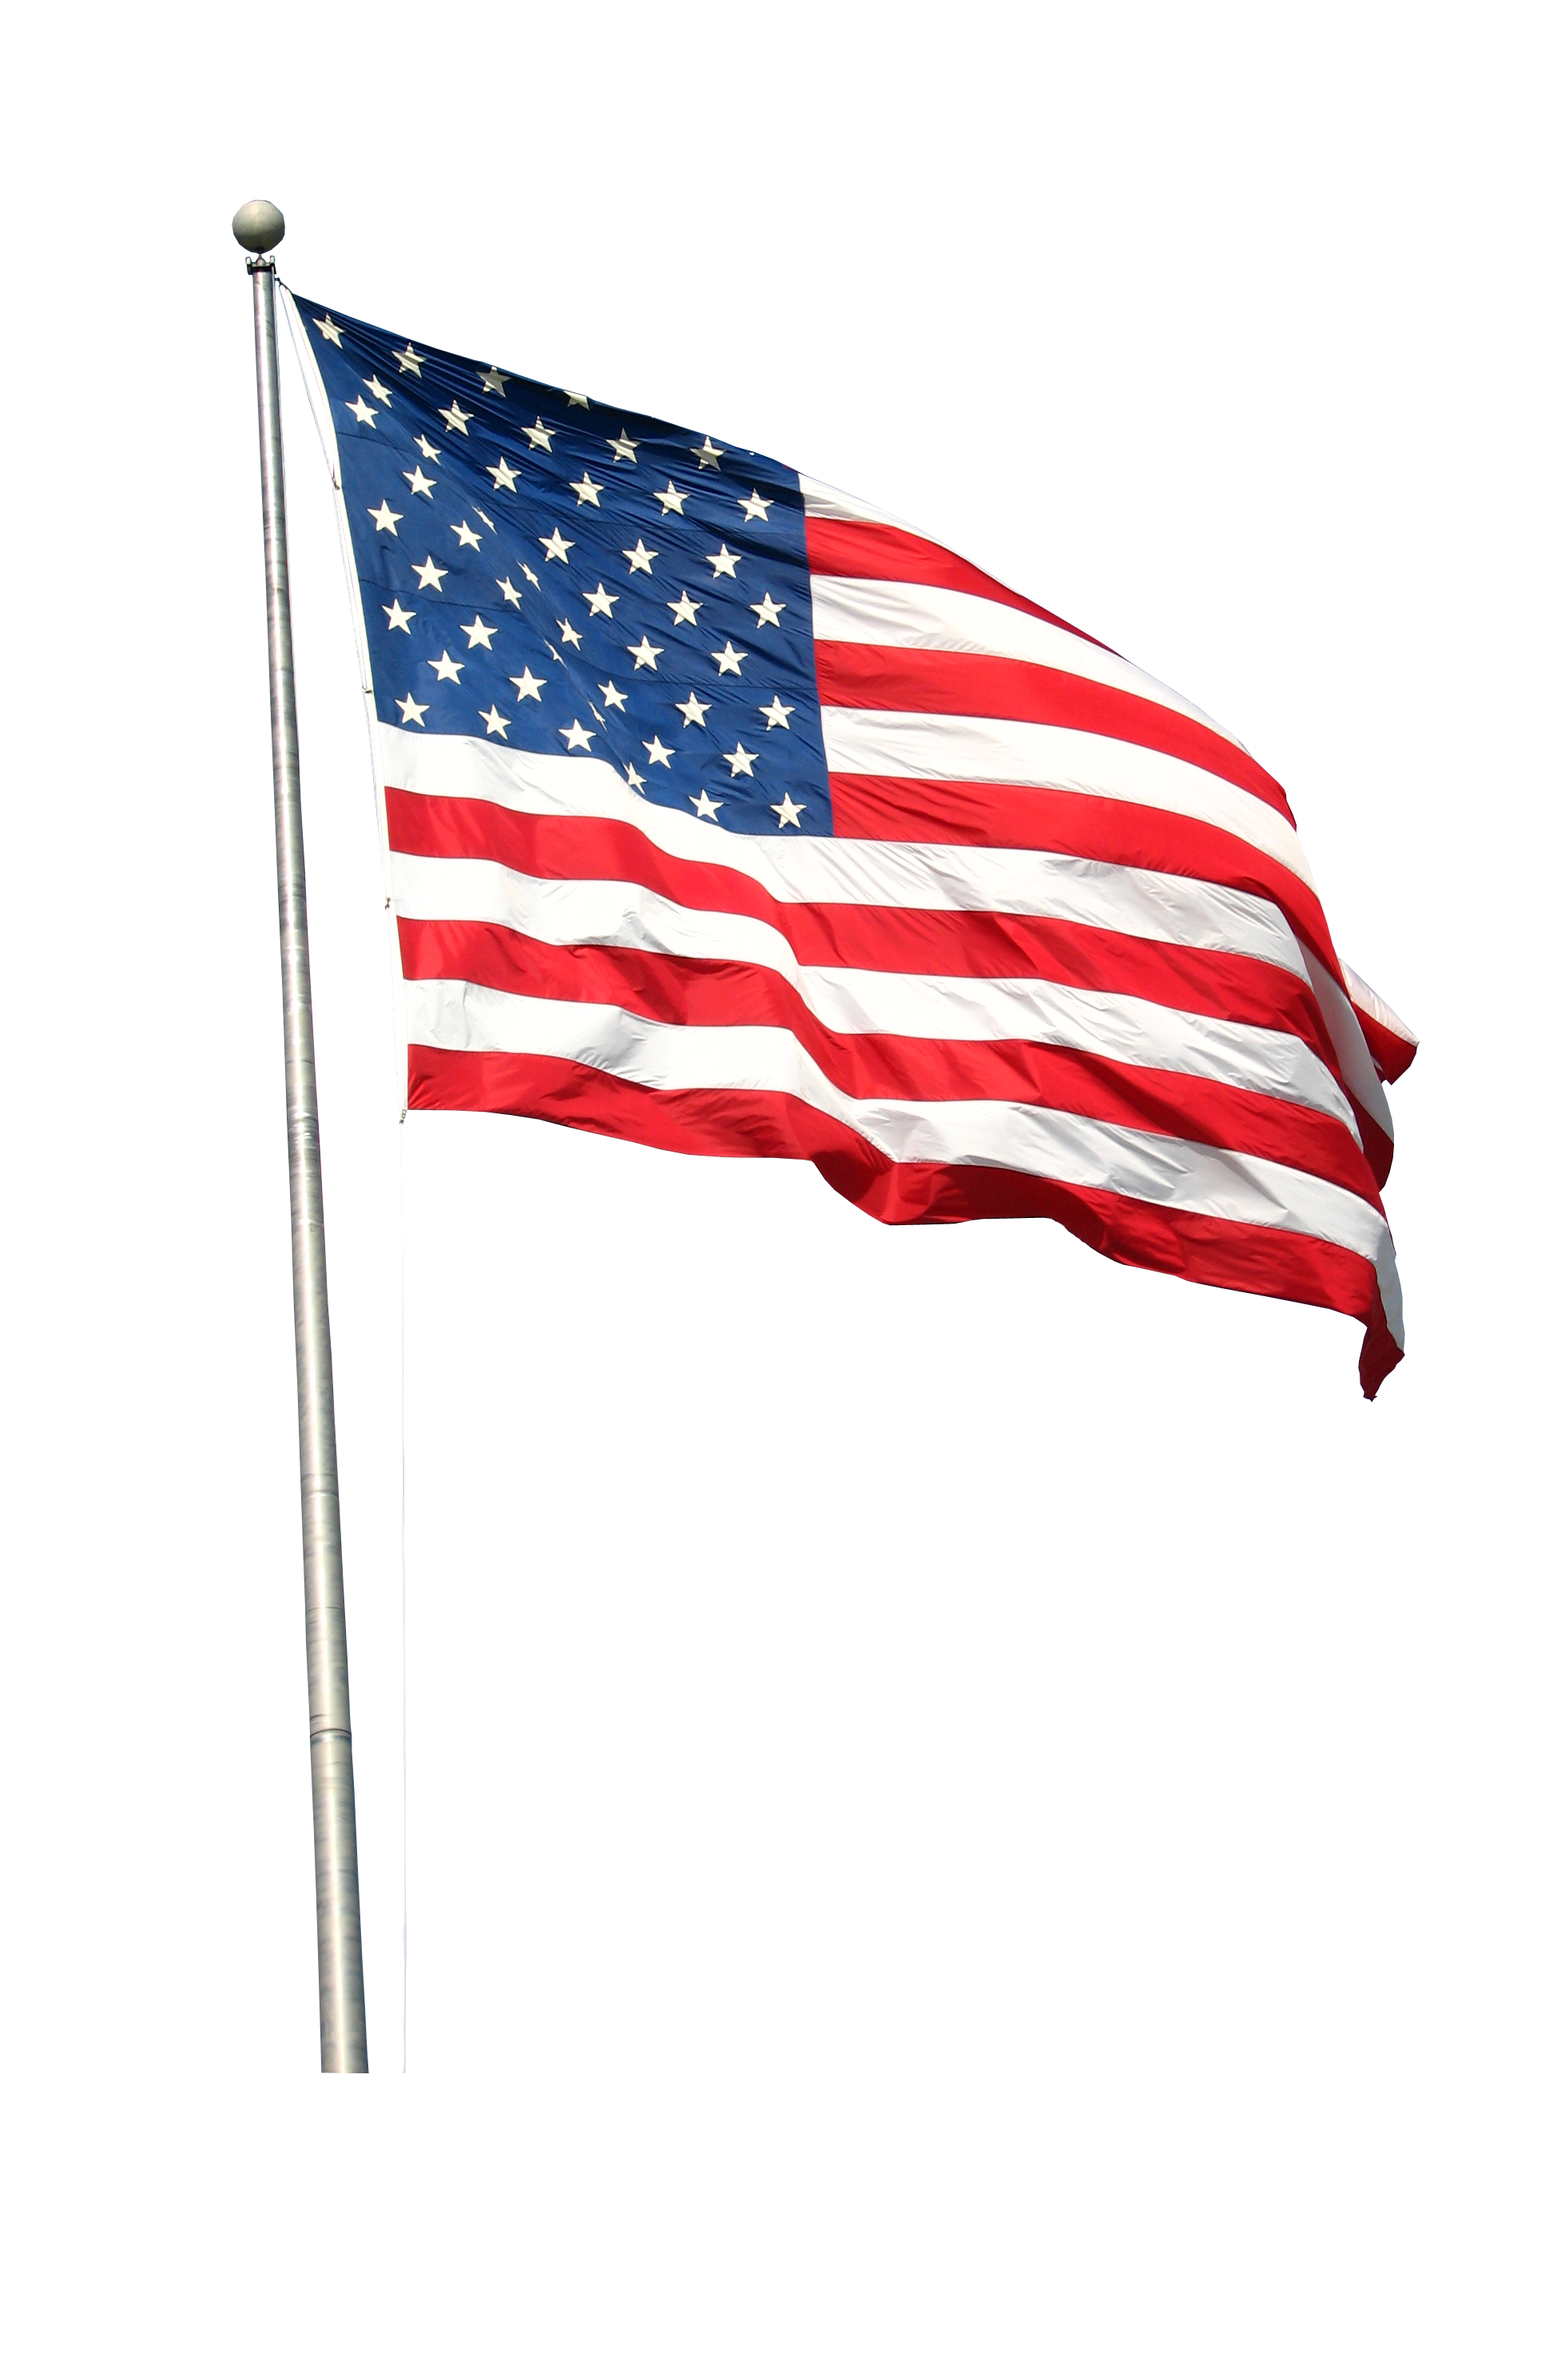 best usa flag png american flag png American Flag Waving Vector Waving American Flag Background